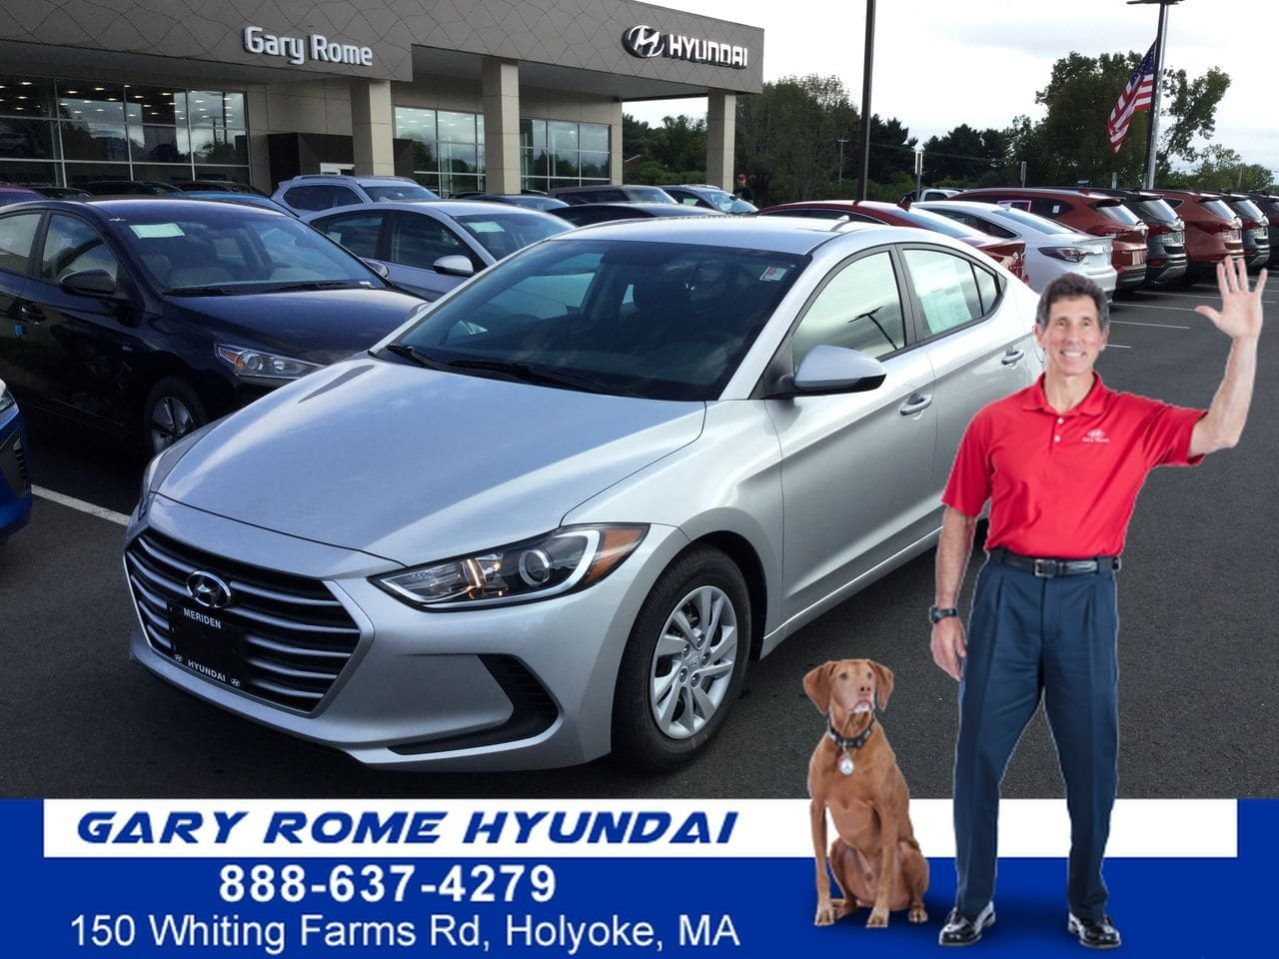 Used Hyundai Elantra for Sale in HOLYOKE, MA Hyundai